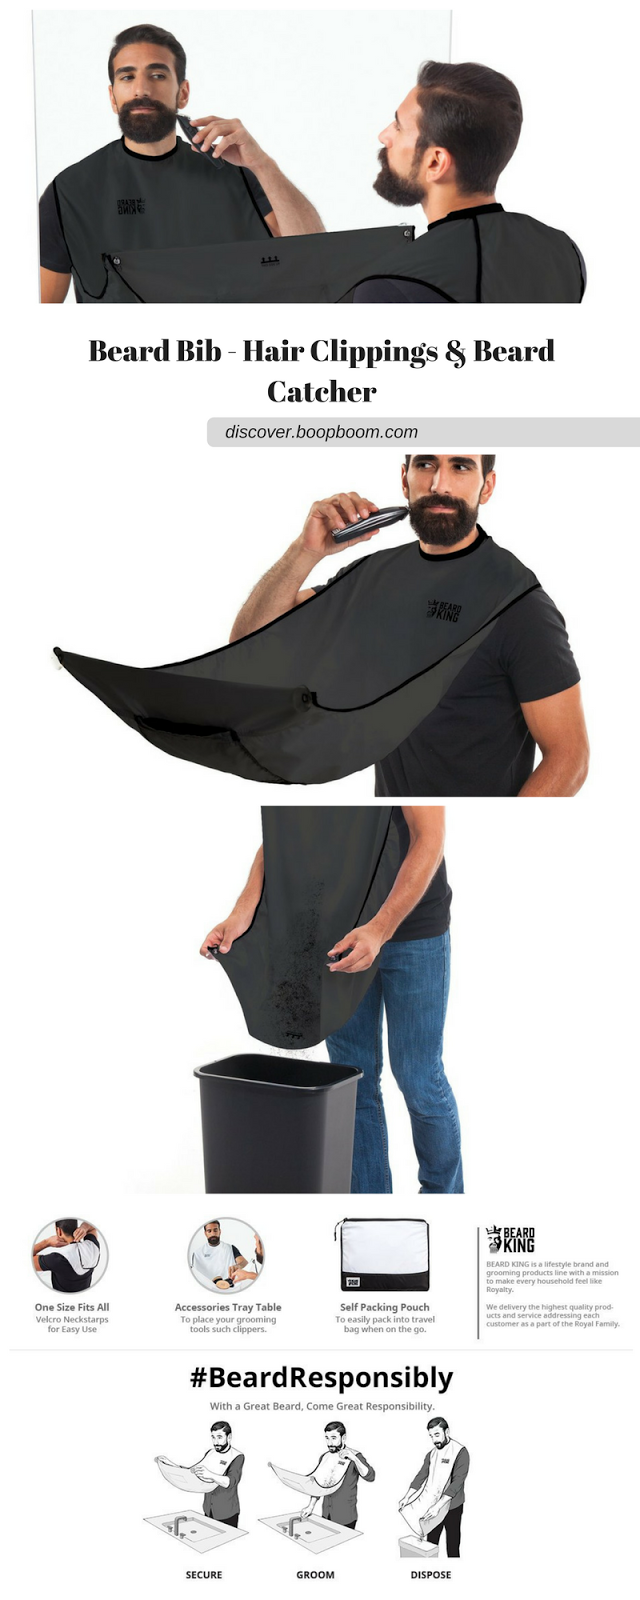 Beard Bib - Hair Clippings & Beard Catcher. This men's grooming tool reduces the manual cleanup and allows for an easy disposal. (Cool Gadgets And Crazy Inventions